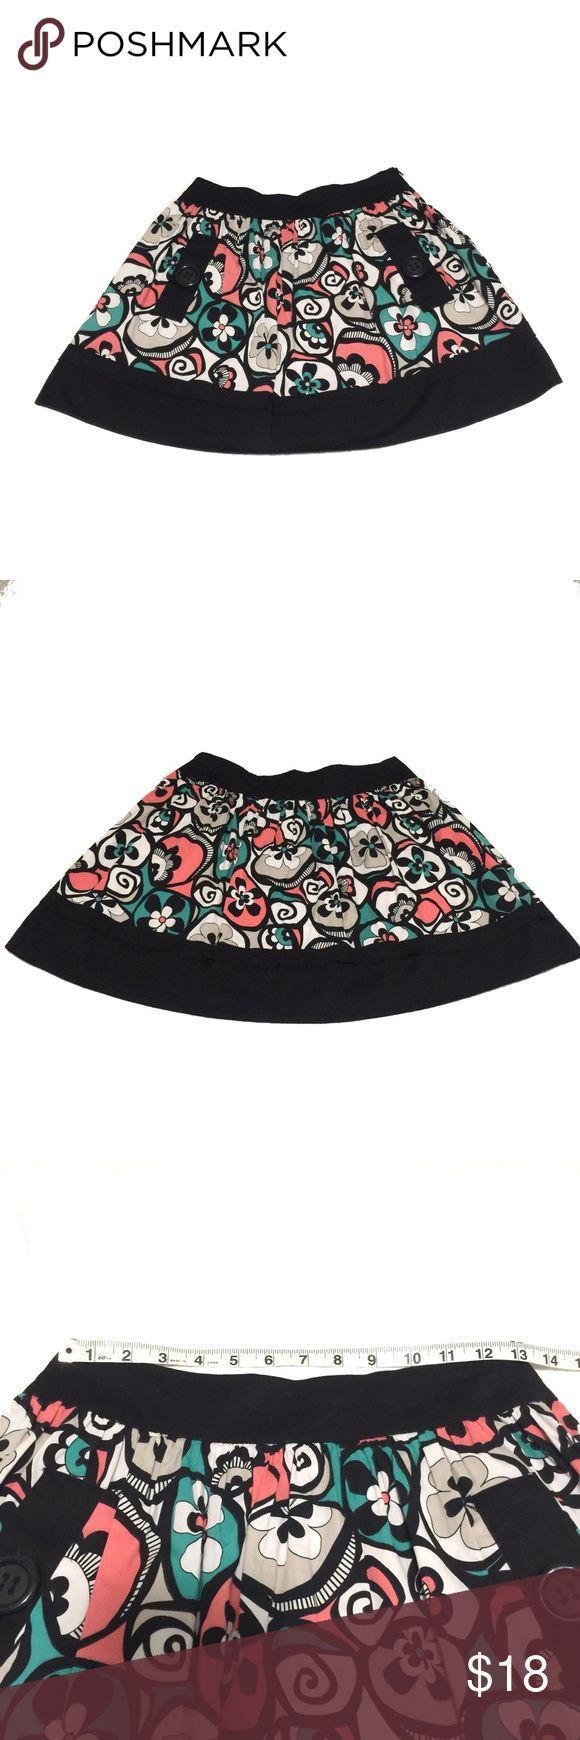 Candie's Tropical Floral Mini Skirt with Pockets This Candie's mini skirt has a cute tropical floral pattern with blooms that resemble Hibiscus flowers. The colors include a salmon pink shade, green, tan, and white. The skirt features a black waistband, a side zipper, two front pockets with button accents and a black ruffle trim. A cute piece to add to your wardrobe and perfect for spring (Spring Break!) and summer. Cotton spandex blend. Size 0. EUC. Gently used. Smoke-free, dog friendly…